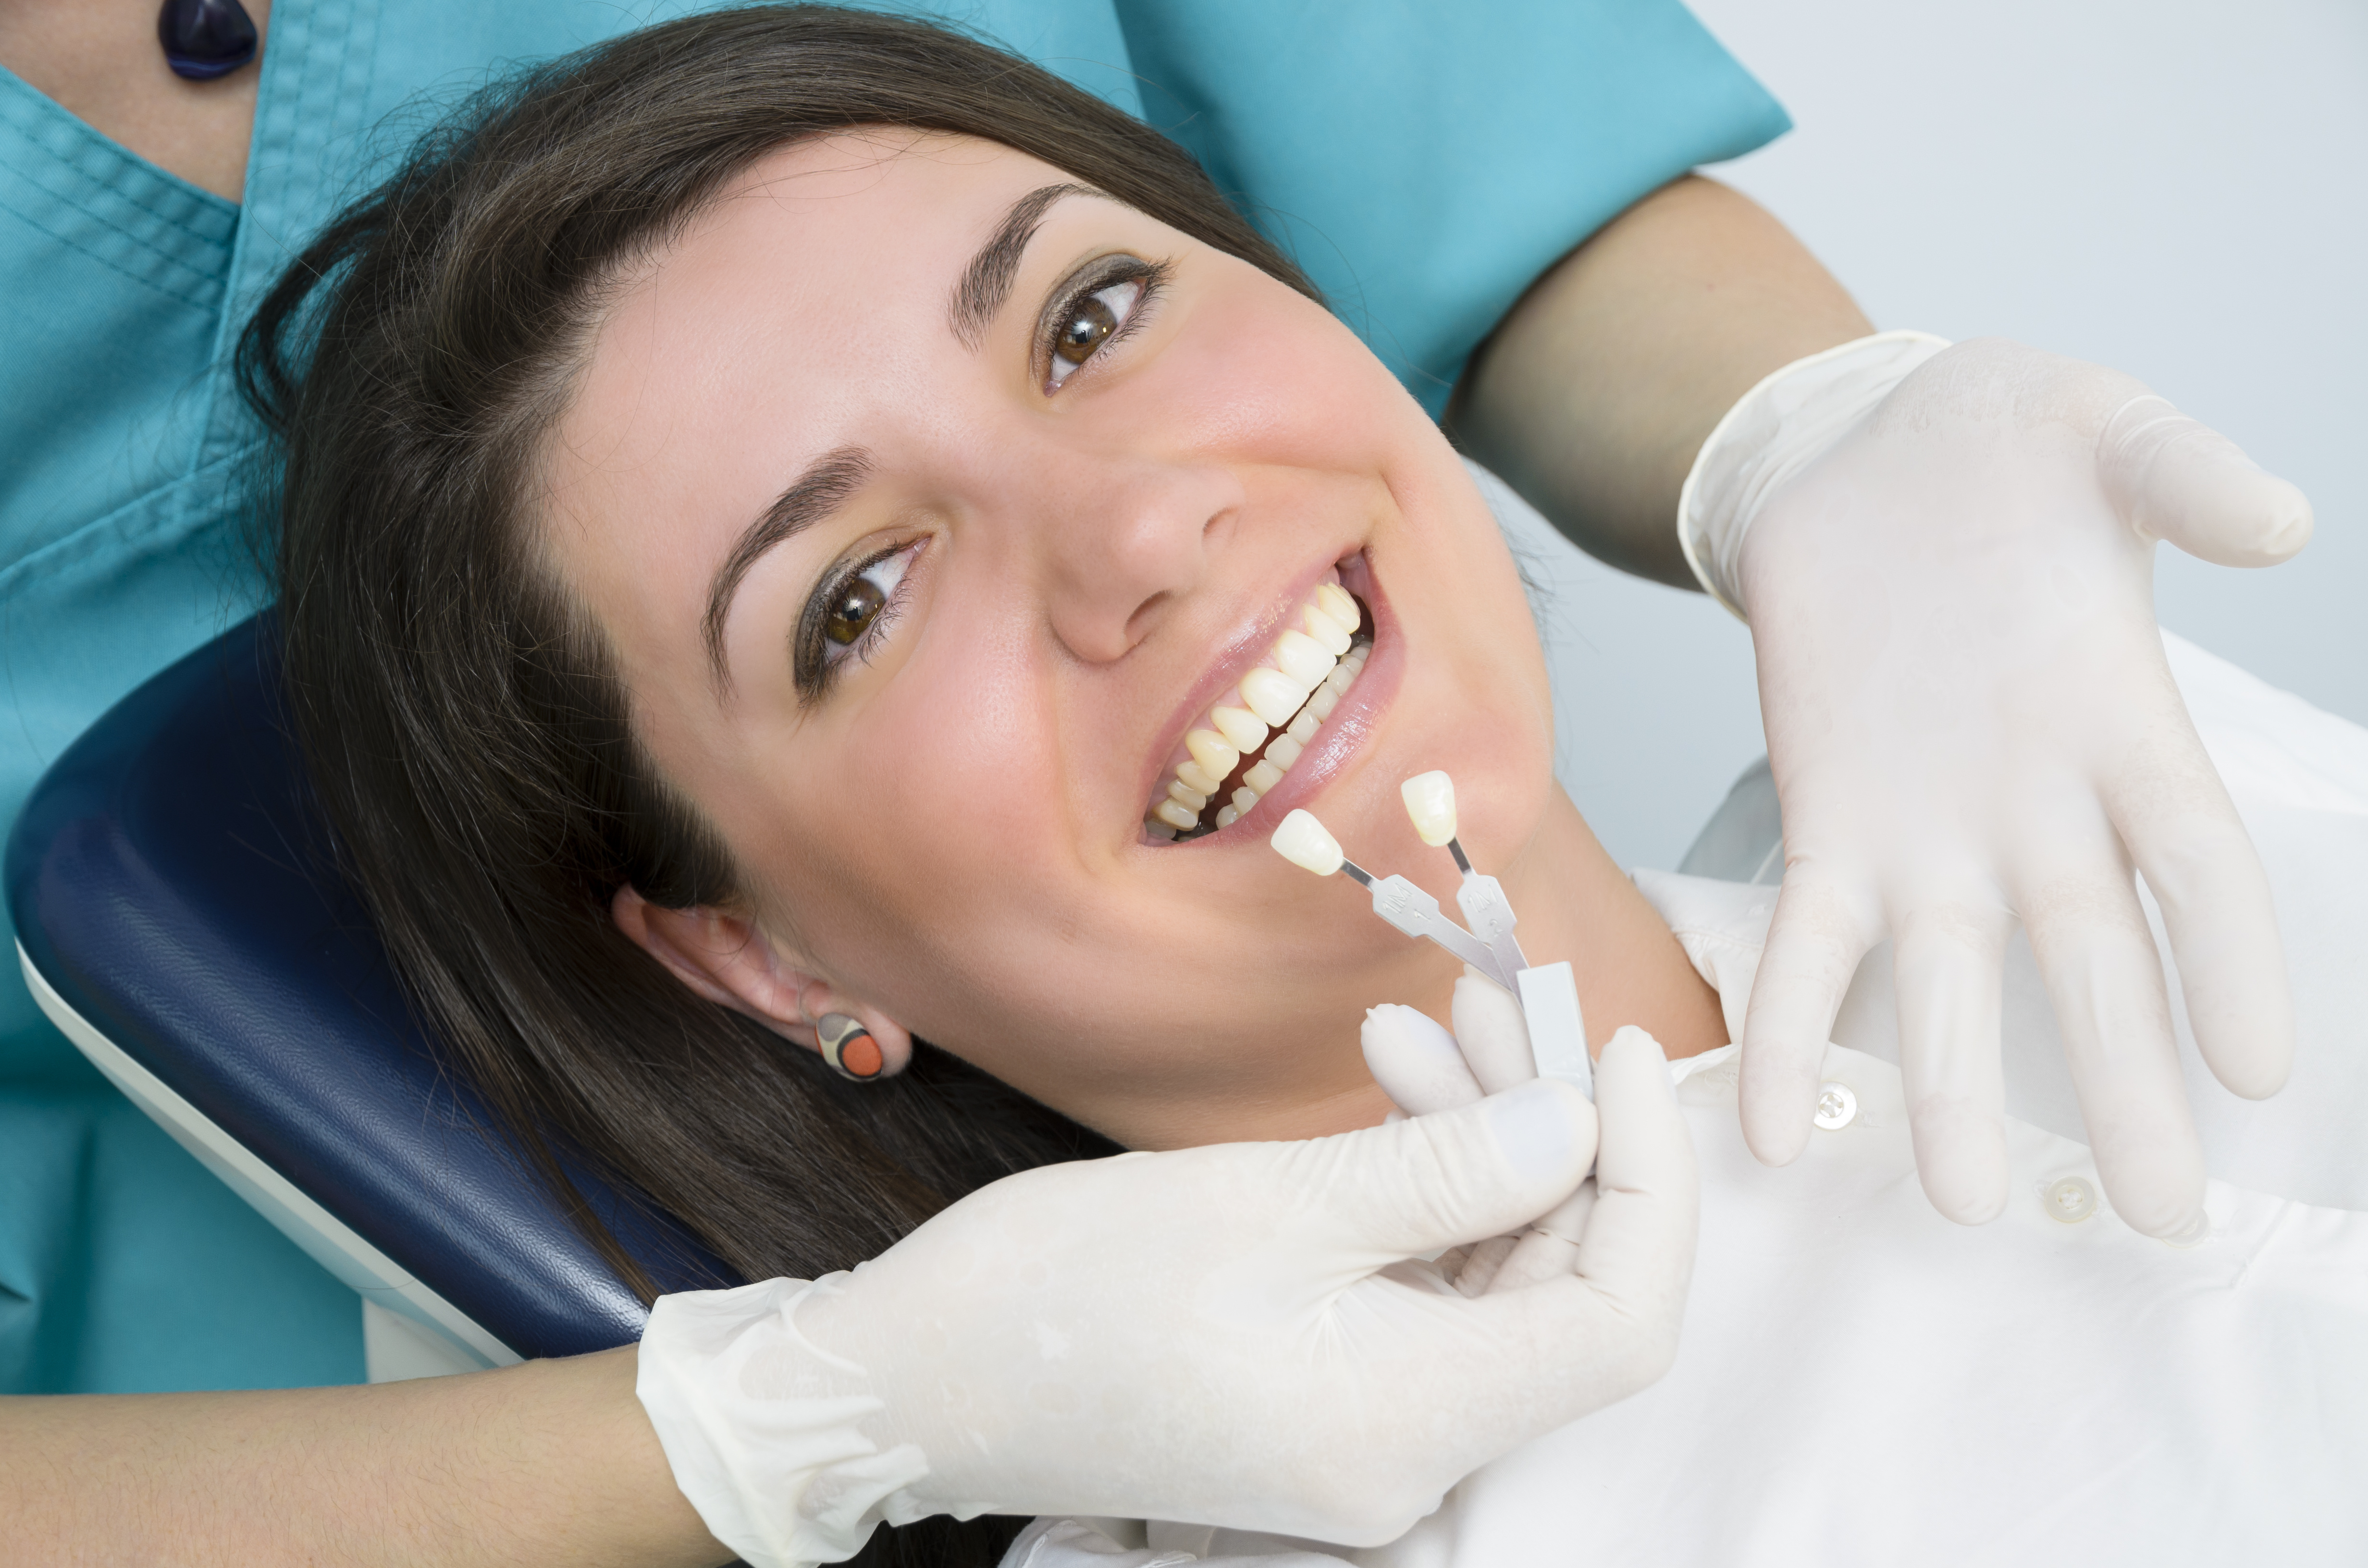 Woman at the dentist's office getting dental implants